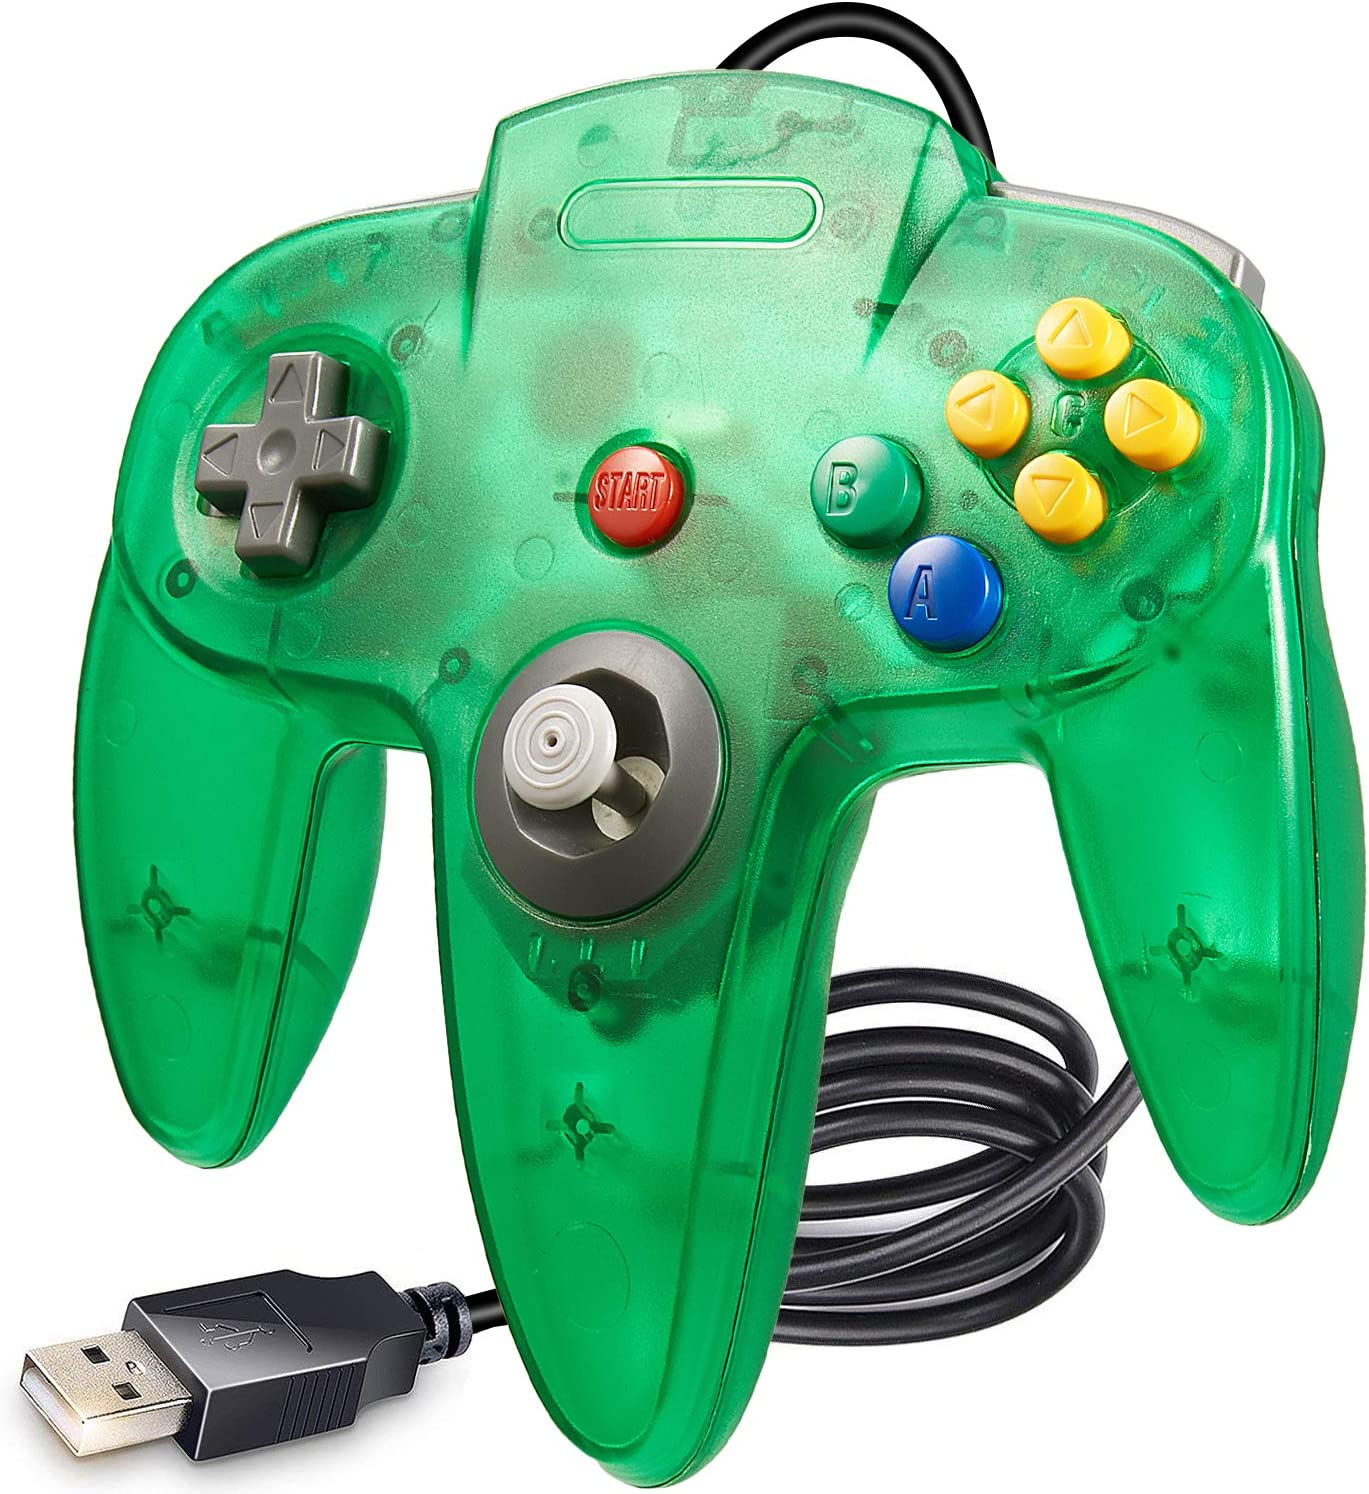 LUXMO PREMIUM Classic N64 USB Controller,Retro N64 Gamepad Joystick PC Controllers for Windows PC Mac Linux Raspberry pi3 Genesis Higan Retro Pie